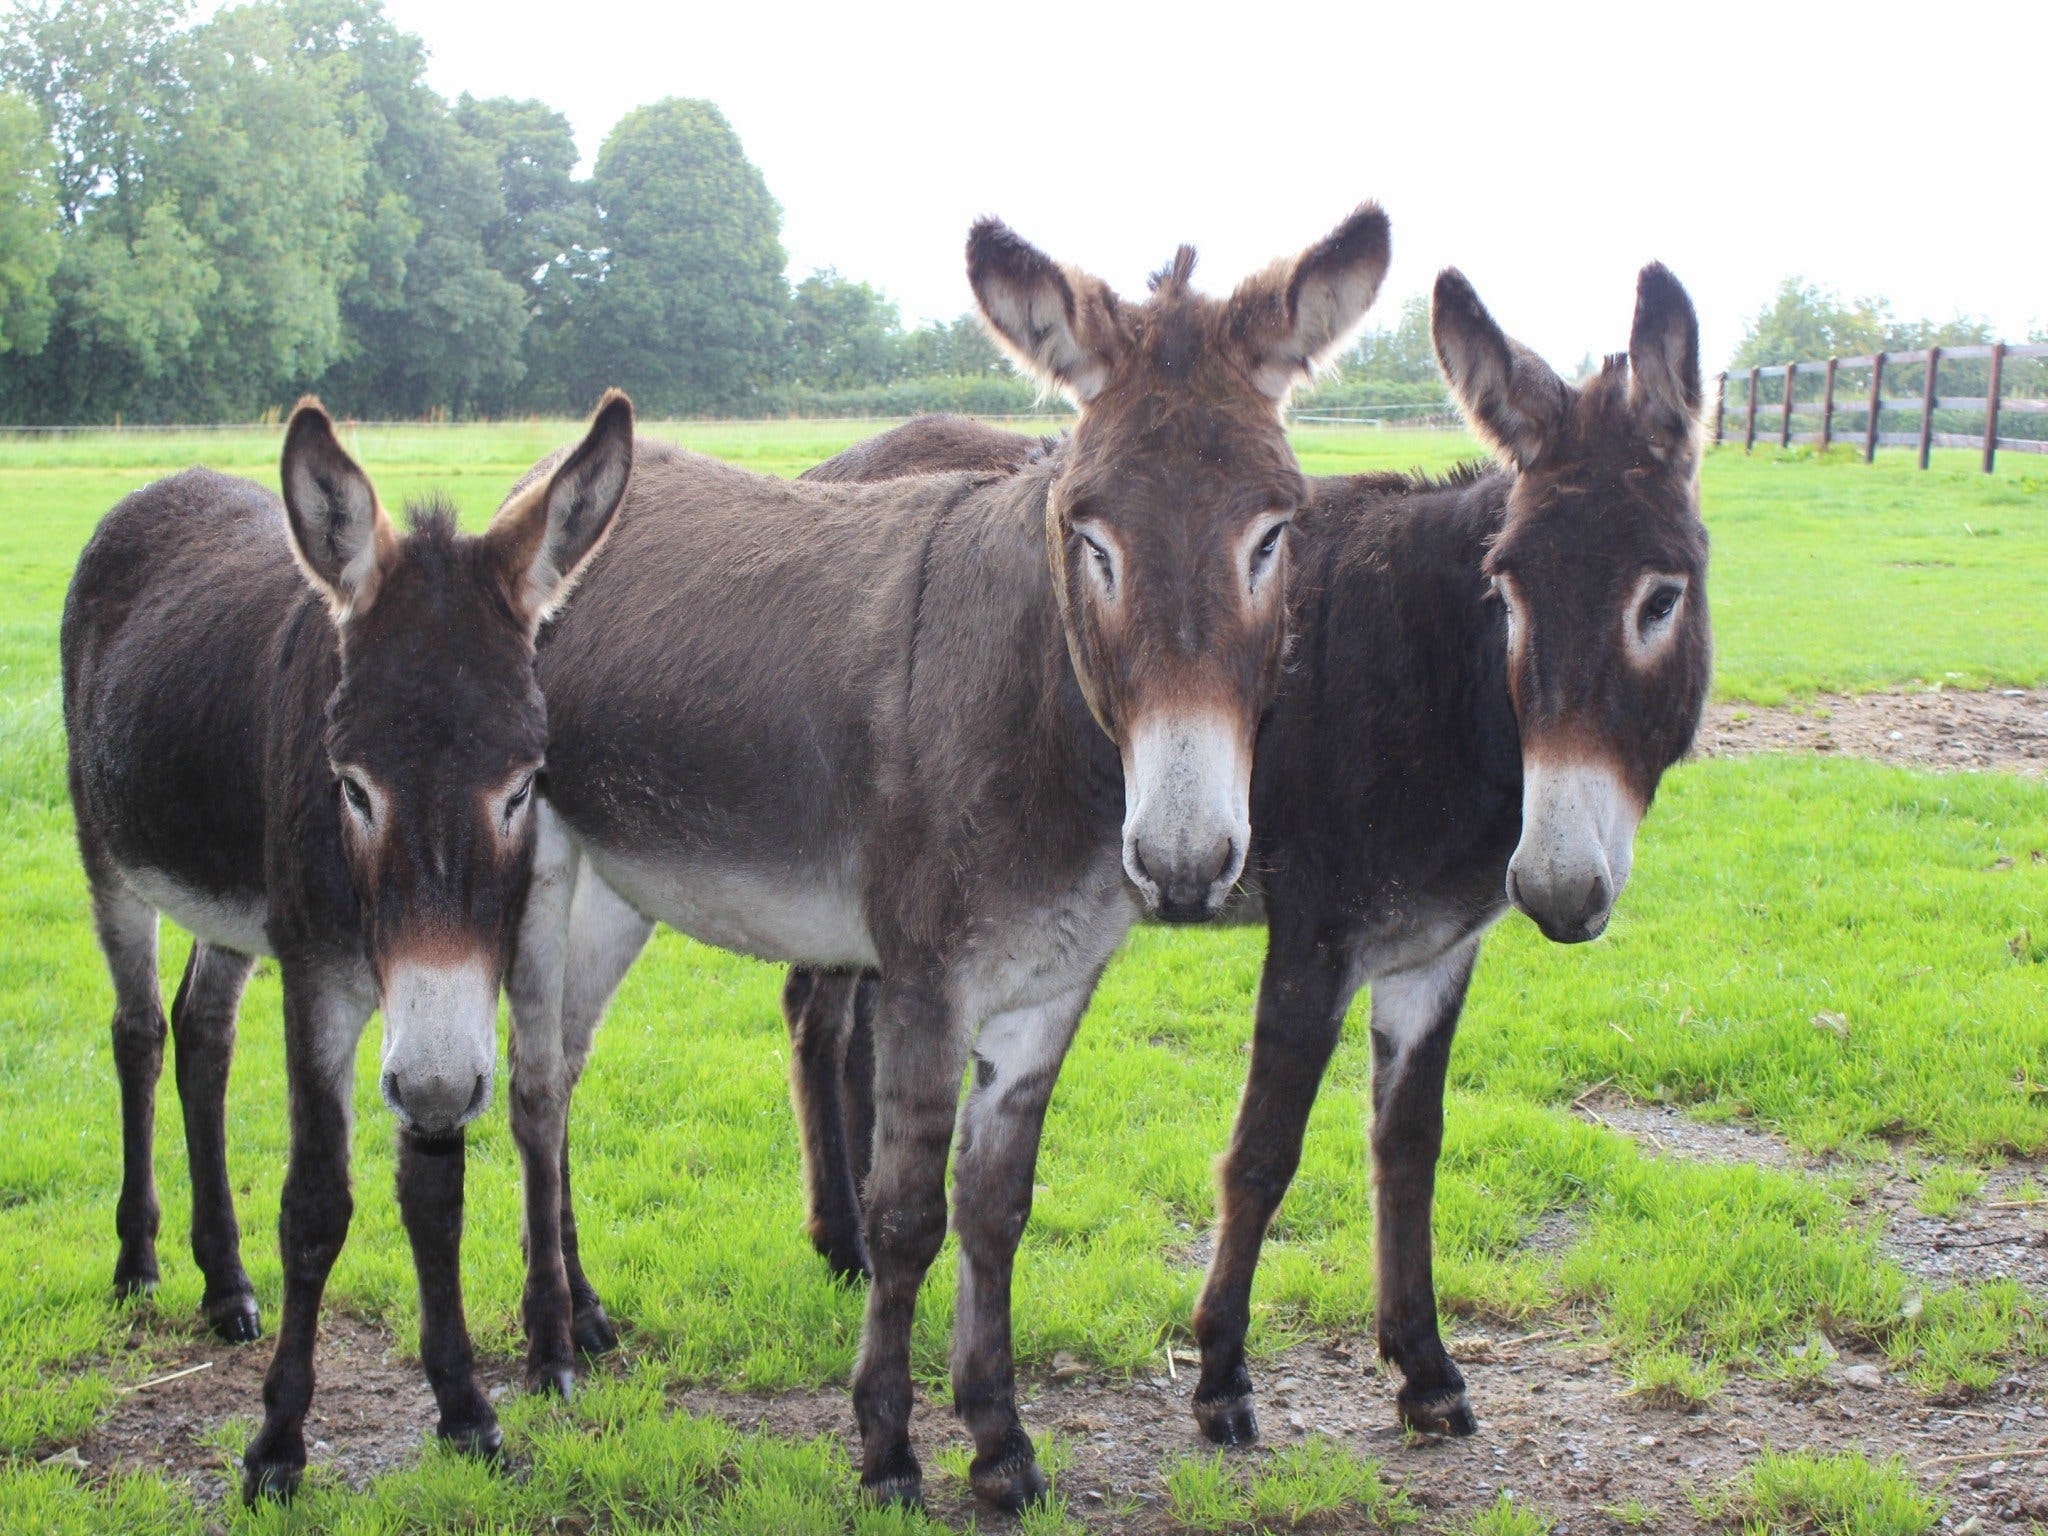 The Good Samaritan Donkey Sanctuary